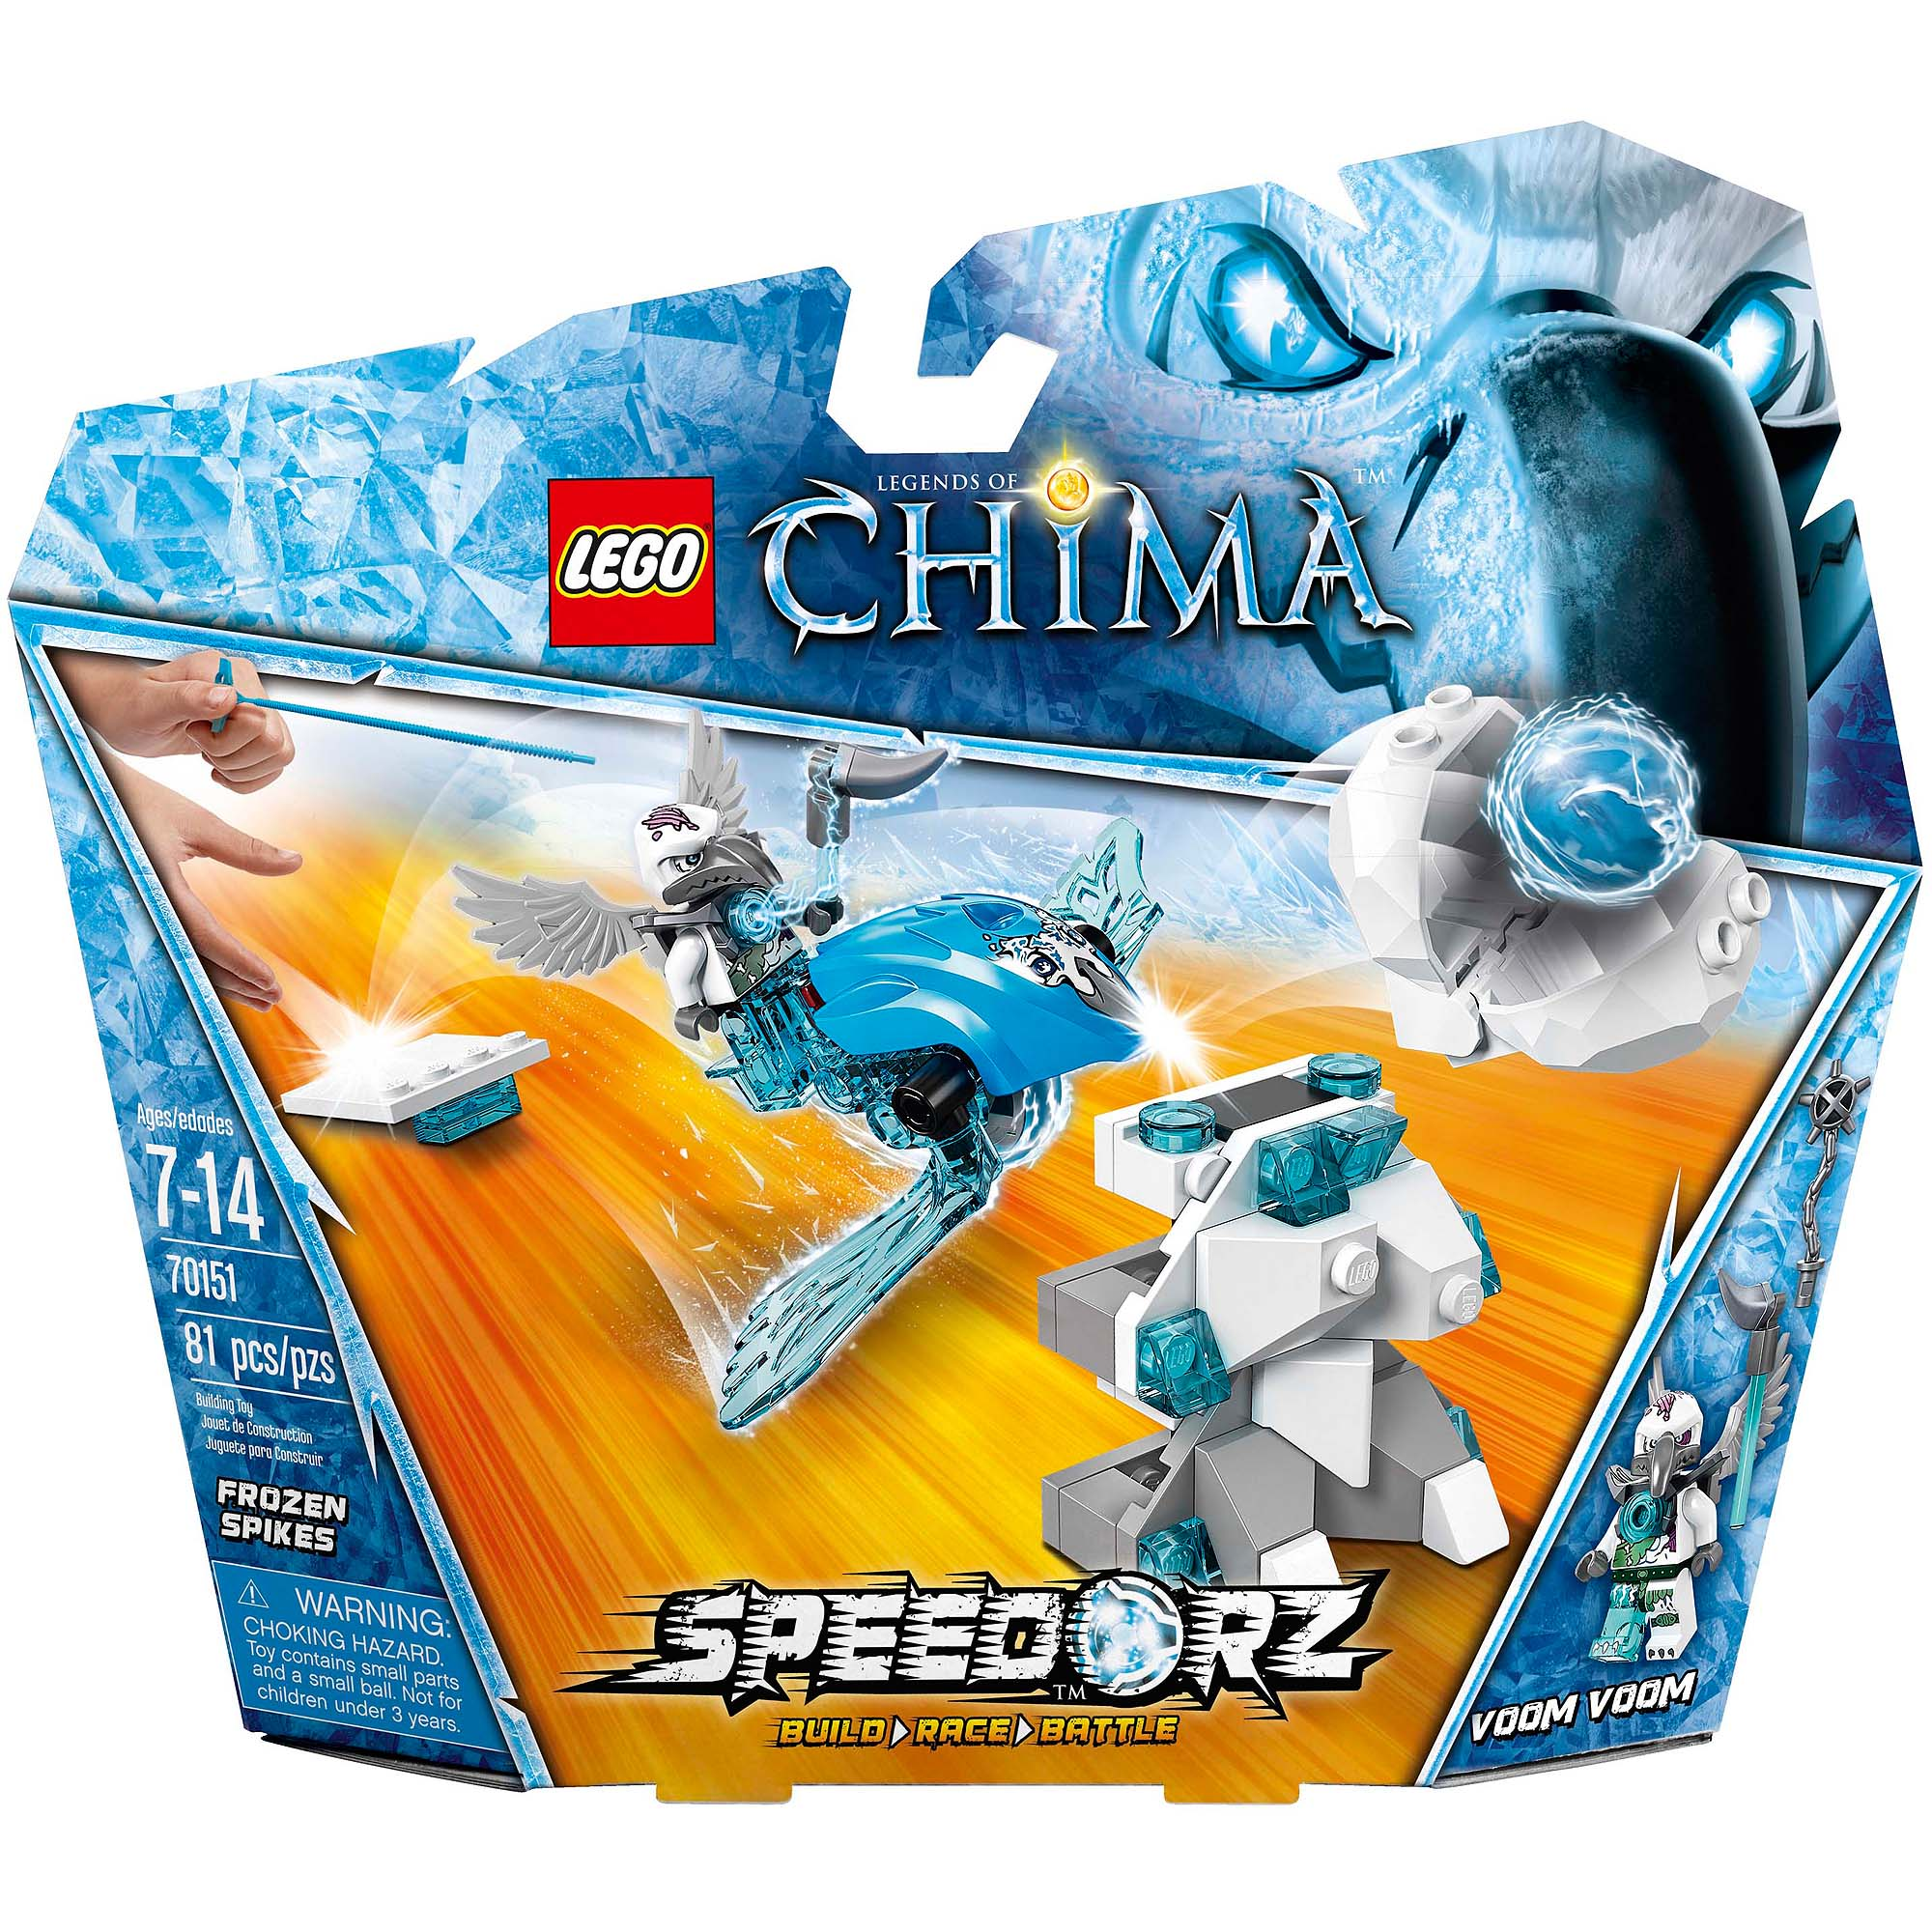 LEGO Chima Frozen Spikes